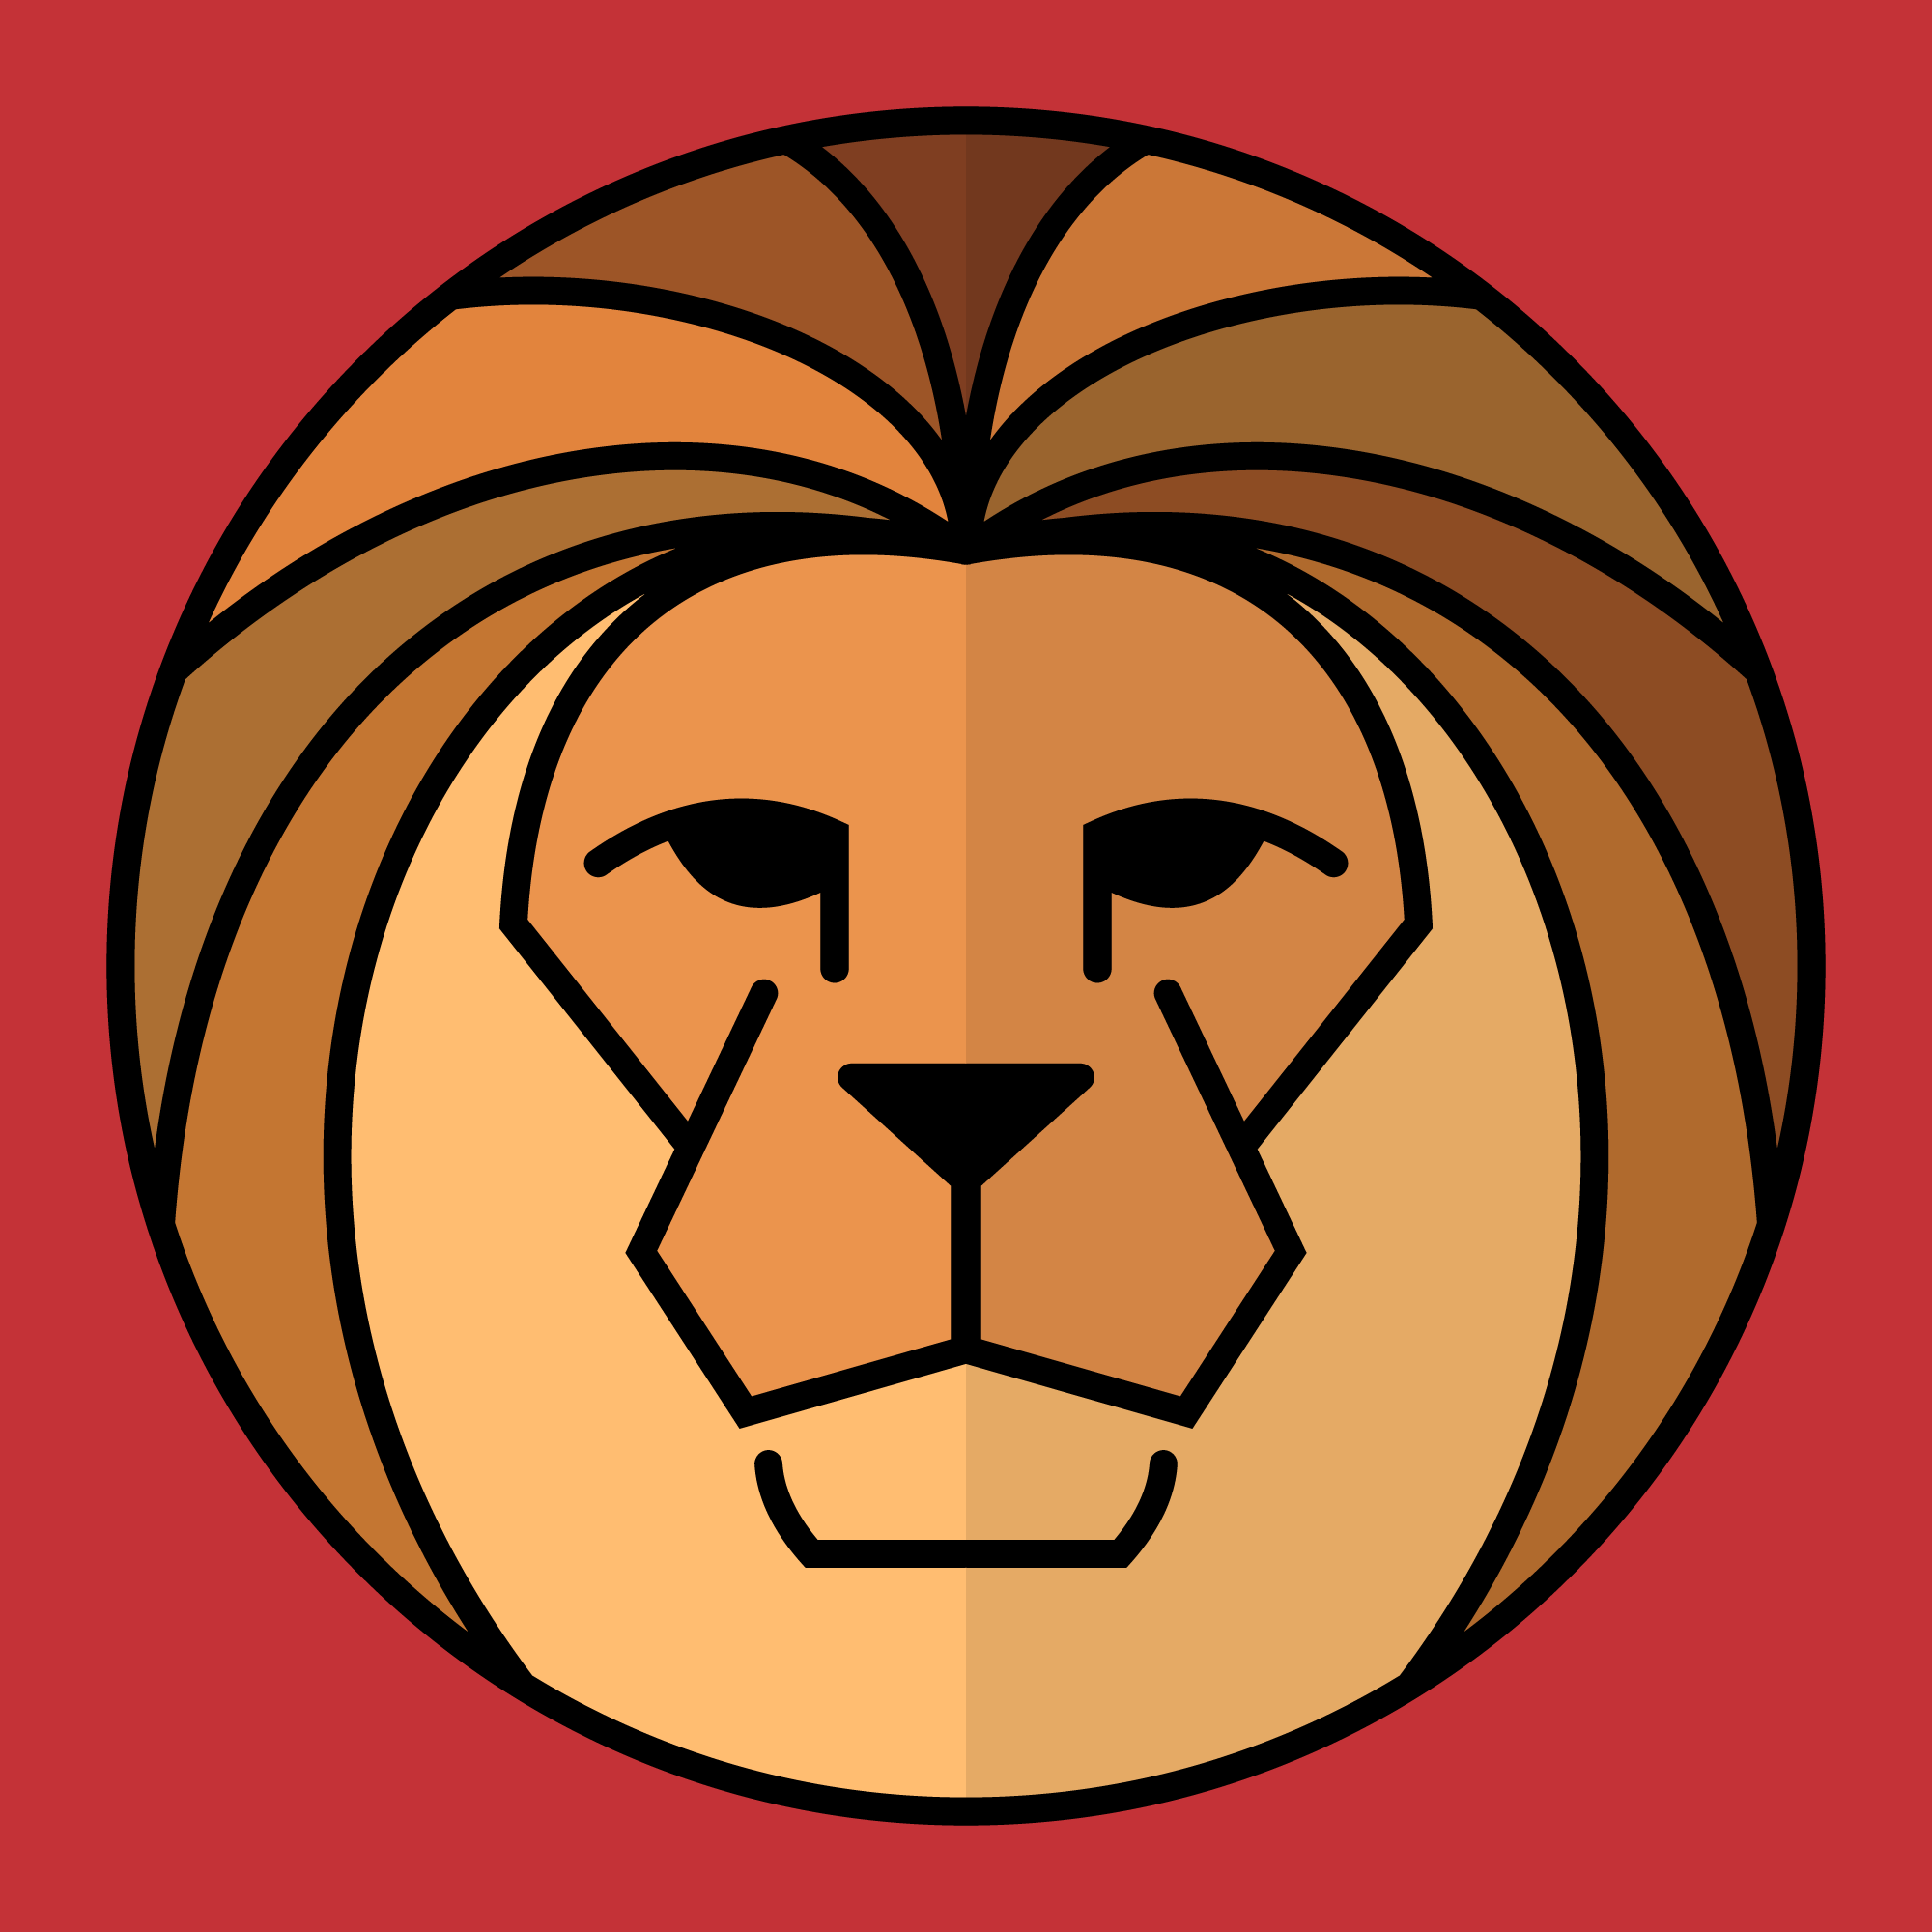 lion-icon-featured-image